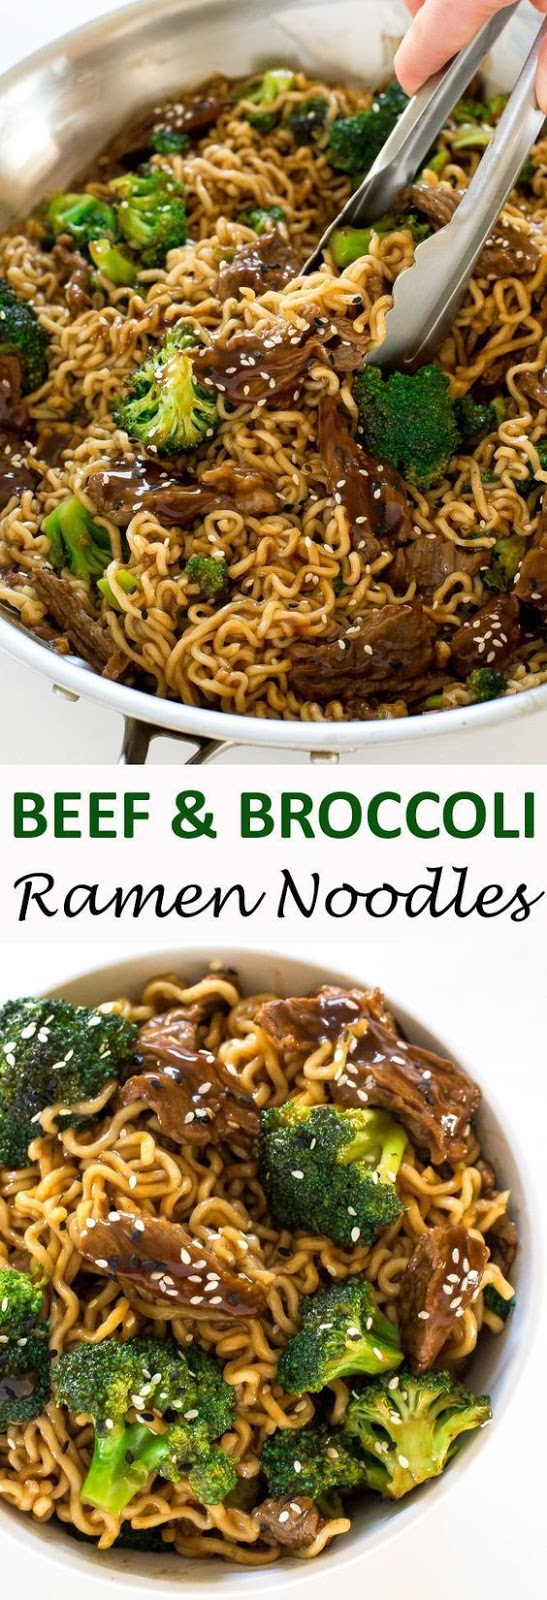 Beef and Broccoli Ramen   #DESSERTS #HEALTHYFOOD #EASYRECIPES #DINNER #LAUCH #DELICIOUS #EASY #HOLIDAYS #RECIPE #SPECIALDIET #WORLDCUISINE #CAKE #APPETIZERS #HEALTHYRECIPES #DRINKS #COOKINGMETHOD #ITALIANRECIPES #MEAT #VEGANRECIPES #COOKIES #PASTA #FRUIT #SALAD #SOUPAPPETIZERS #NONALCOHOLICDRINKS #MEALPLANNING #VEGETABLES #SOUP #PASTRY #CHOCOLATE #DAIRY #ALCOHOLICDRINKS #BULGURSALAD #BAKING #SNACKS #BEEFRECIPES #MEATAPPETIZERS #MEXICANRECIPES #BREAD #ASIANRECIPES #SEAFOODAPPETIZERS #MUFFINS #BREAKFASTANDBRUNCH #CONDIMENTS #CUPCAKES #CHEESE #CHICKENRECIPES #PIE #COFFEE #NOBAKEDESSERTS #HEALTHYSNACKS #SEAFOOD #GRAIN #LUNCHESDINNERS #MEXICAN #QUICKBREAD #LIQUOR